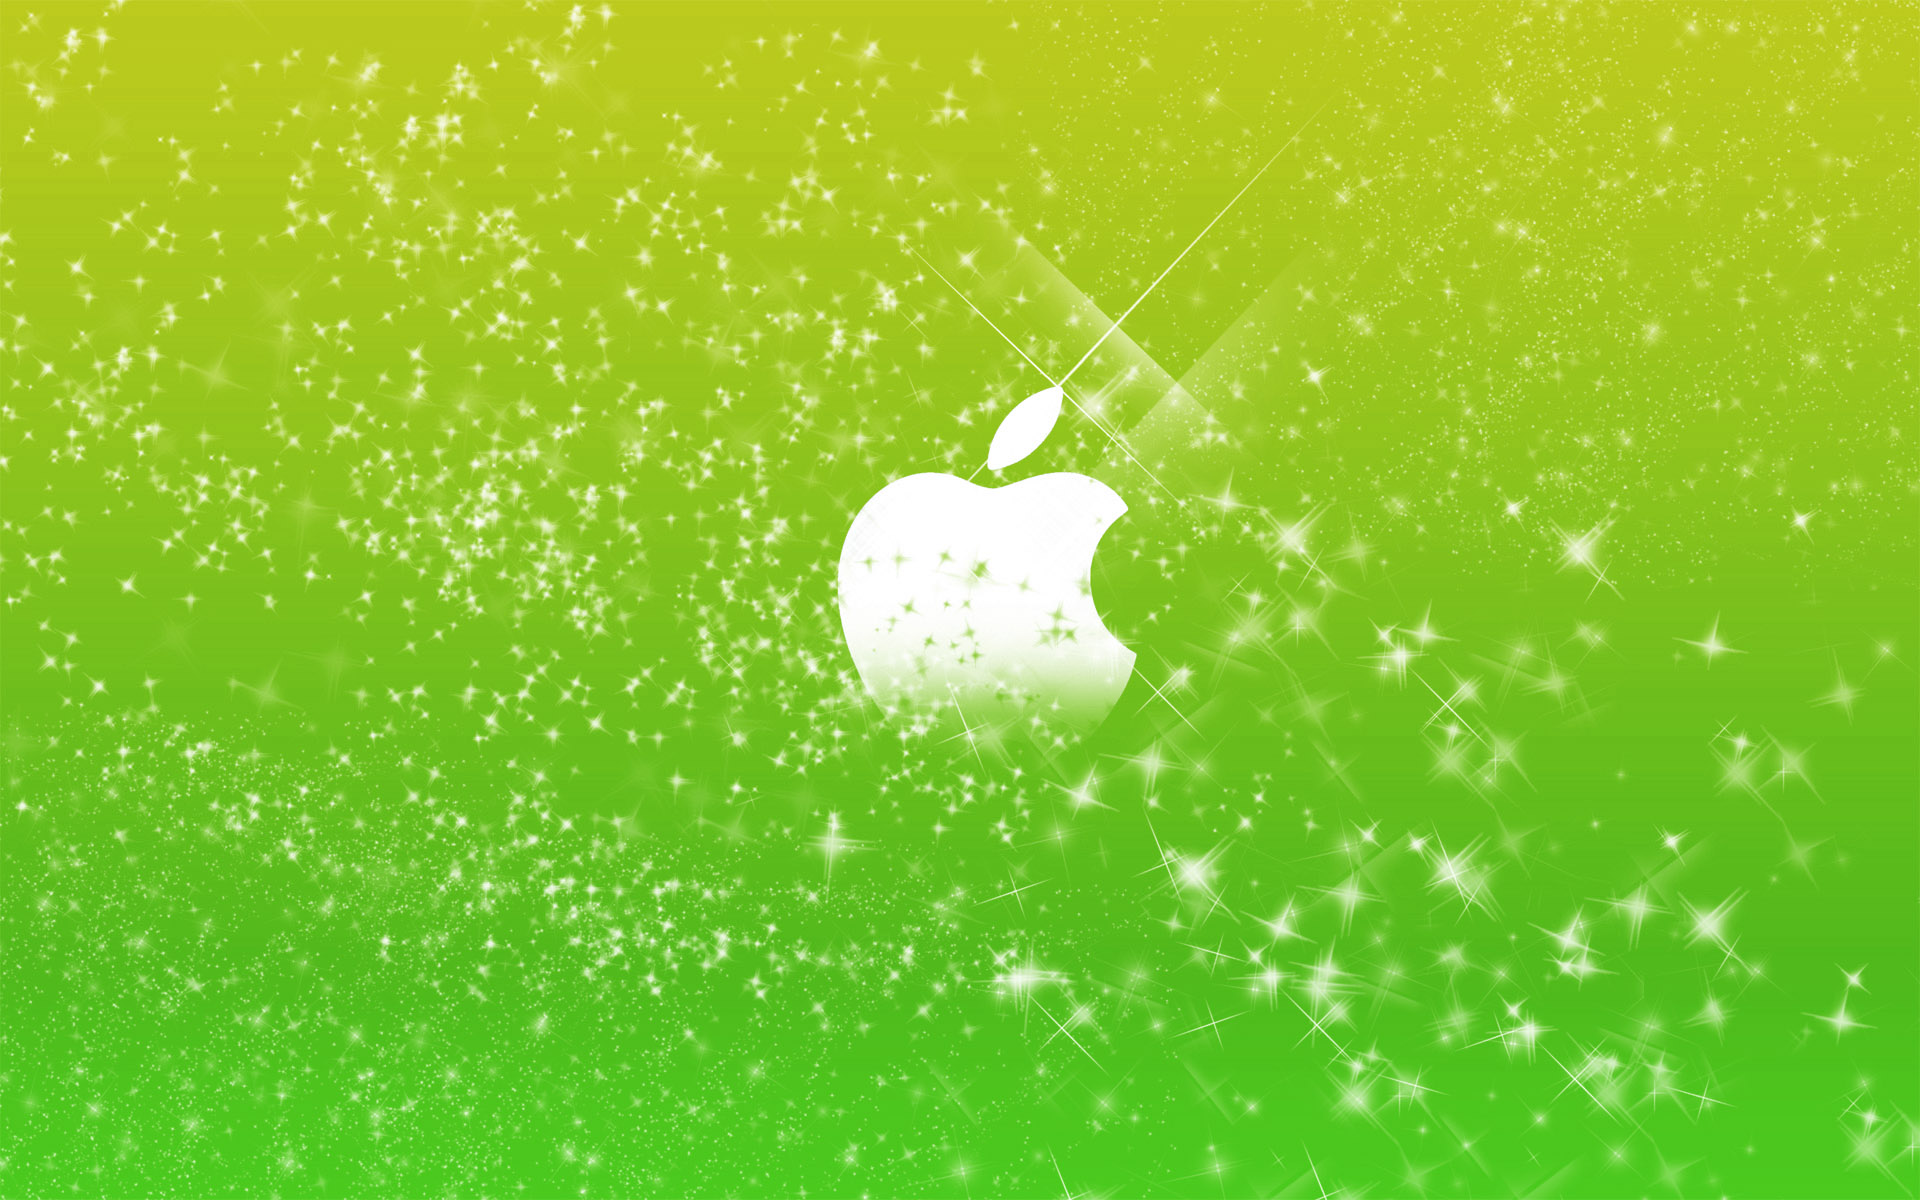 green apple logo wallpapers | green apple logo stock photos